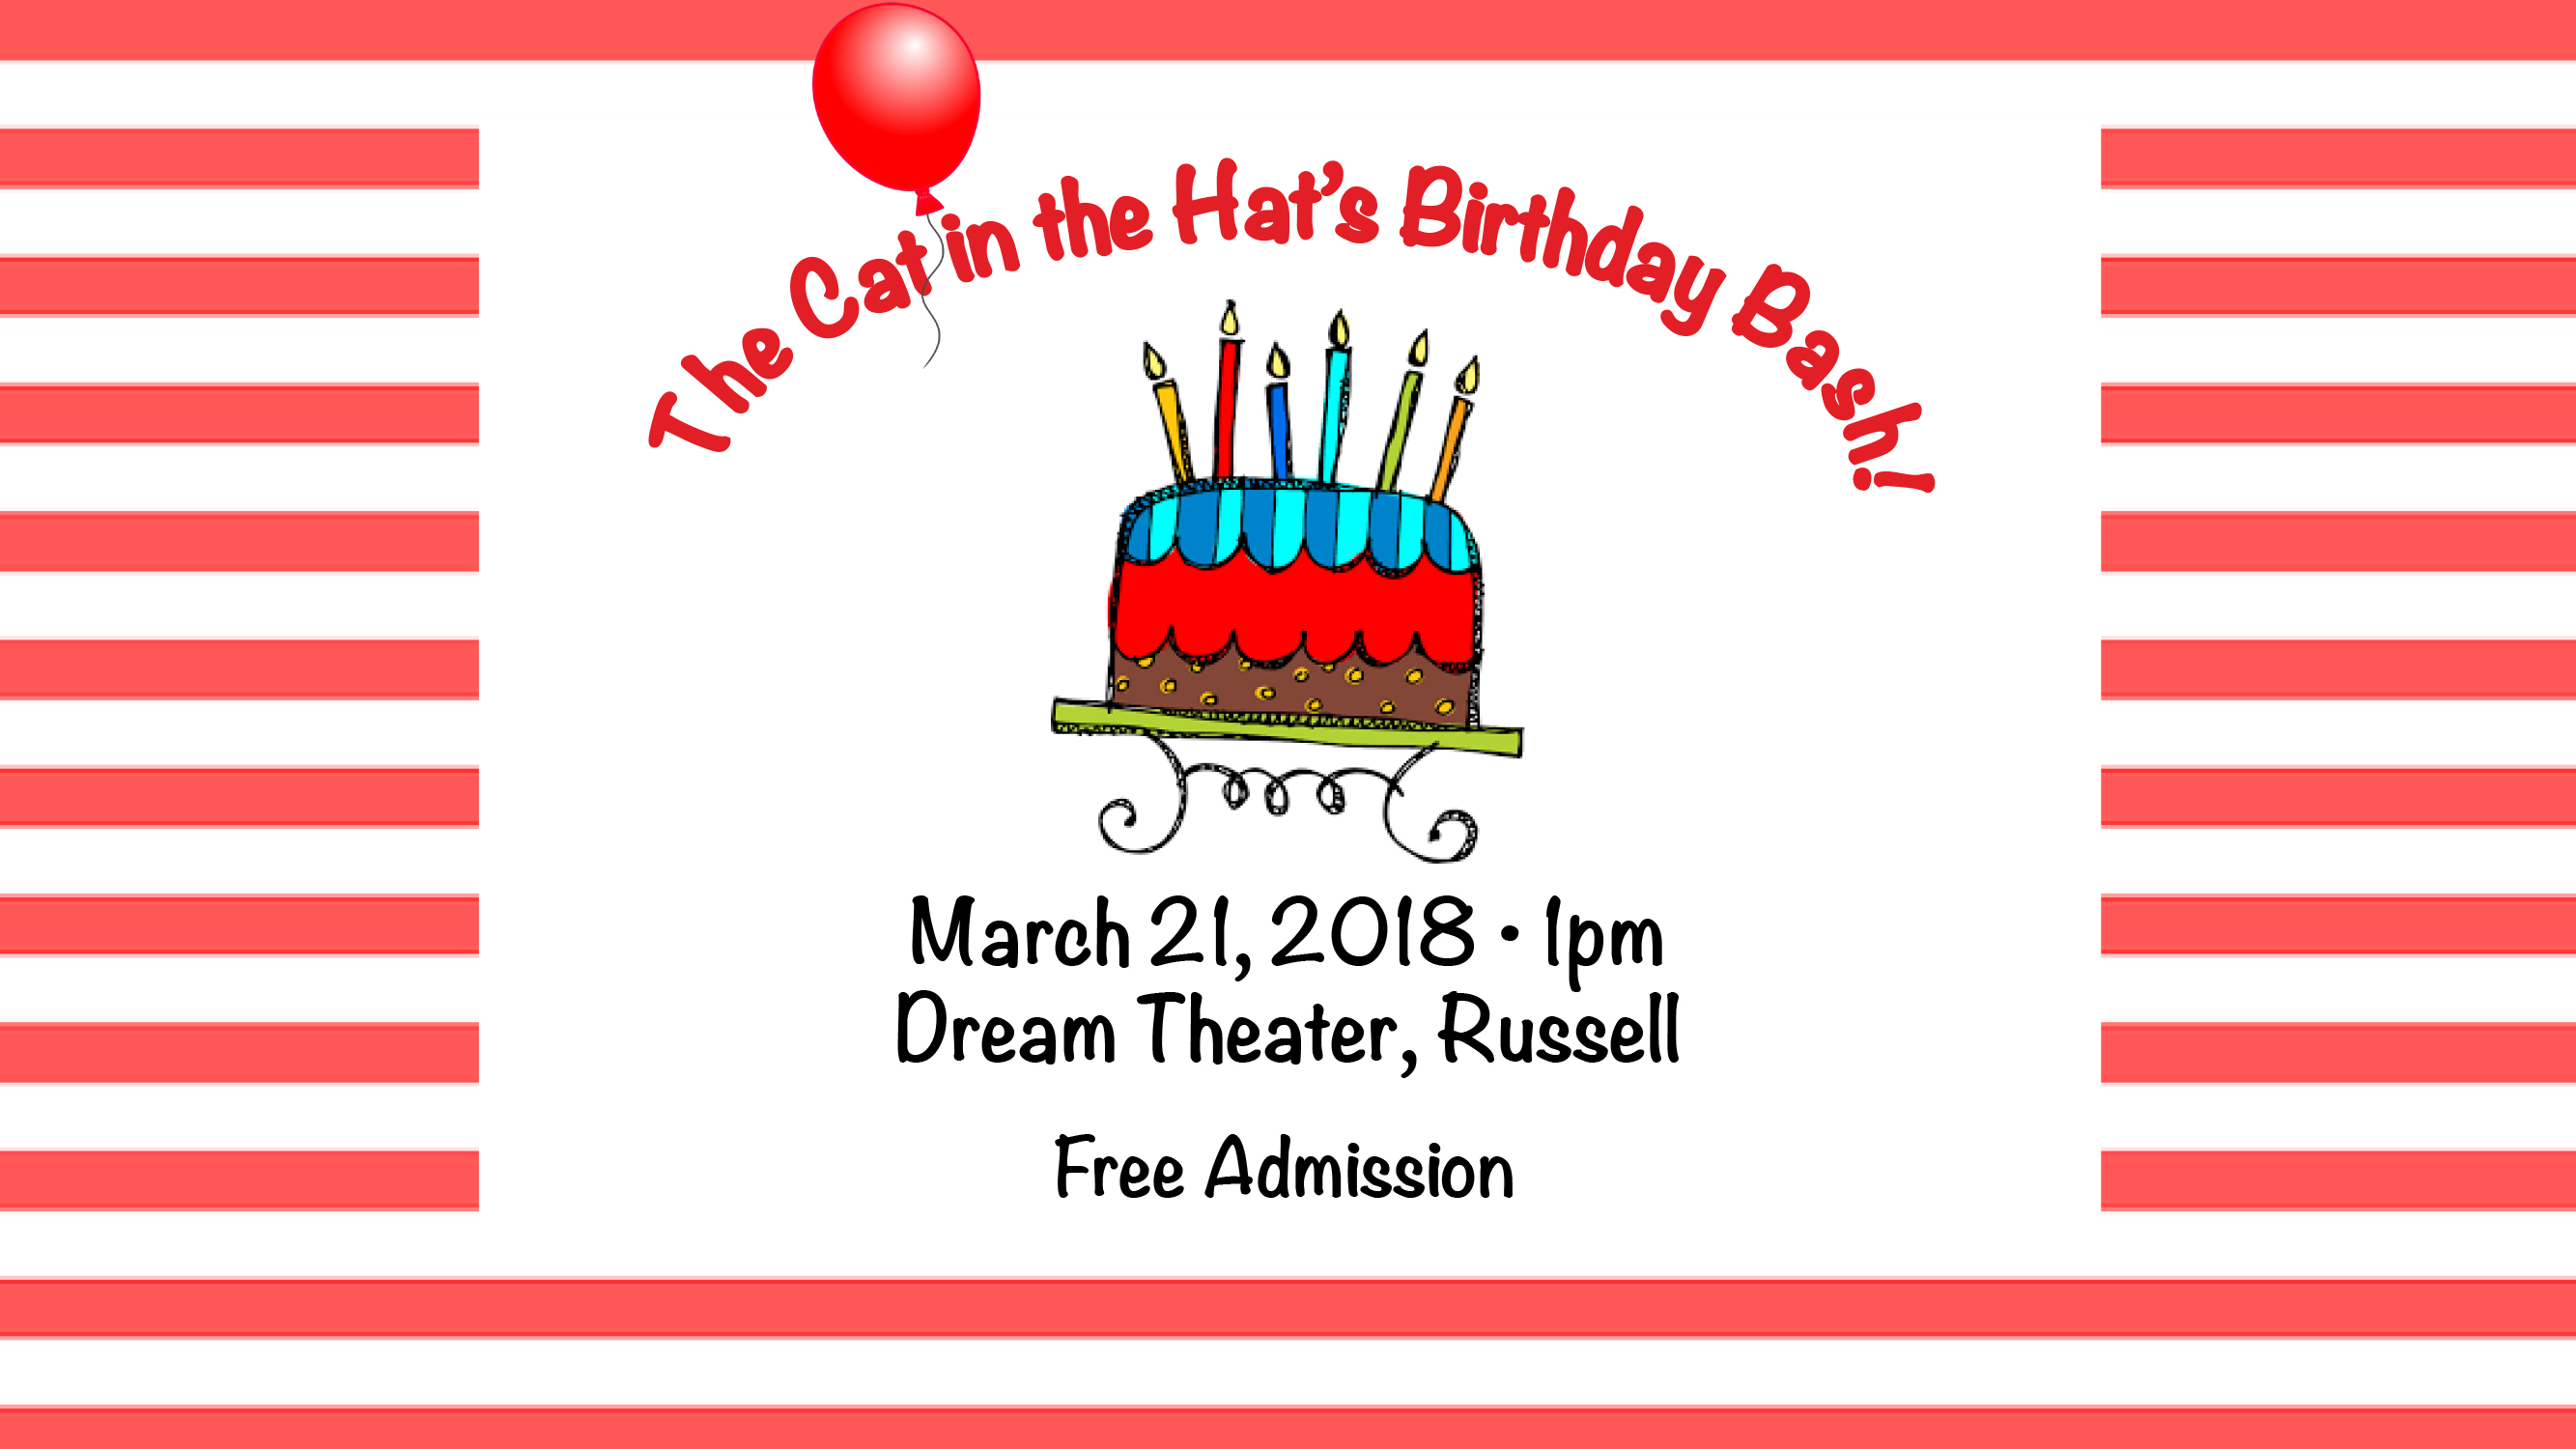 The Cat in the Hat's Birthday Bash